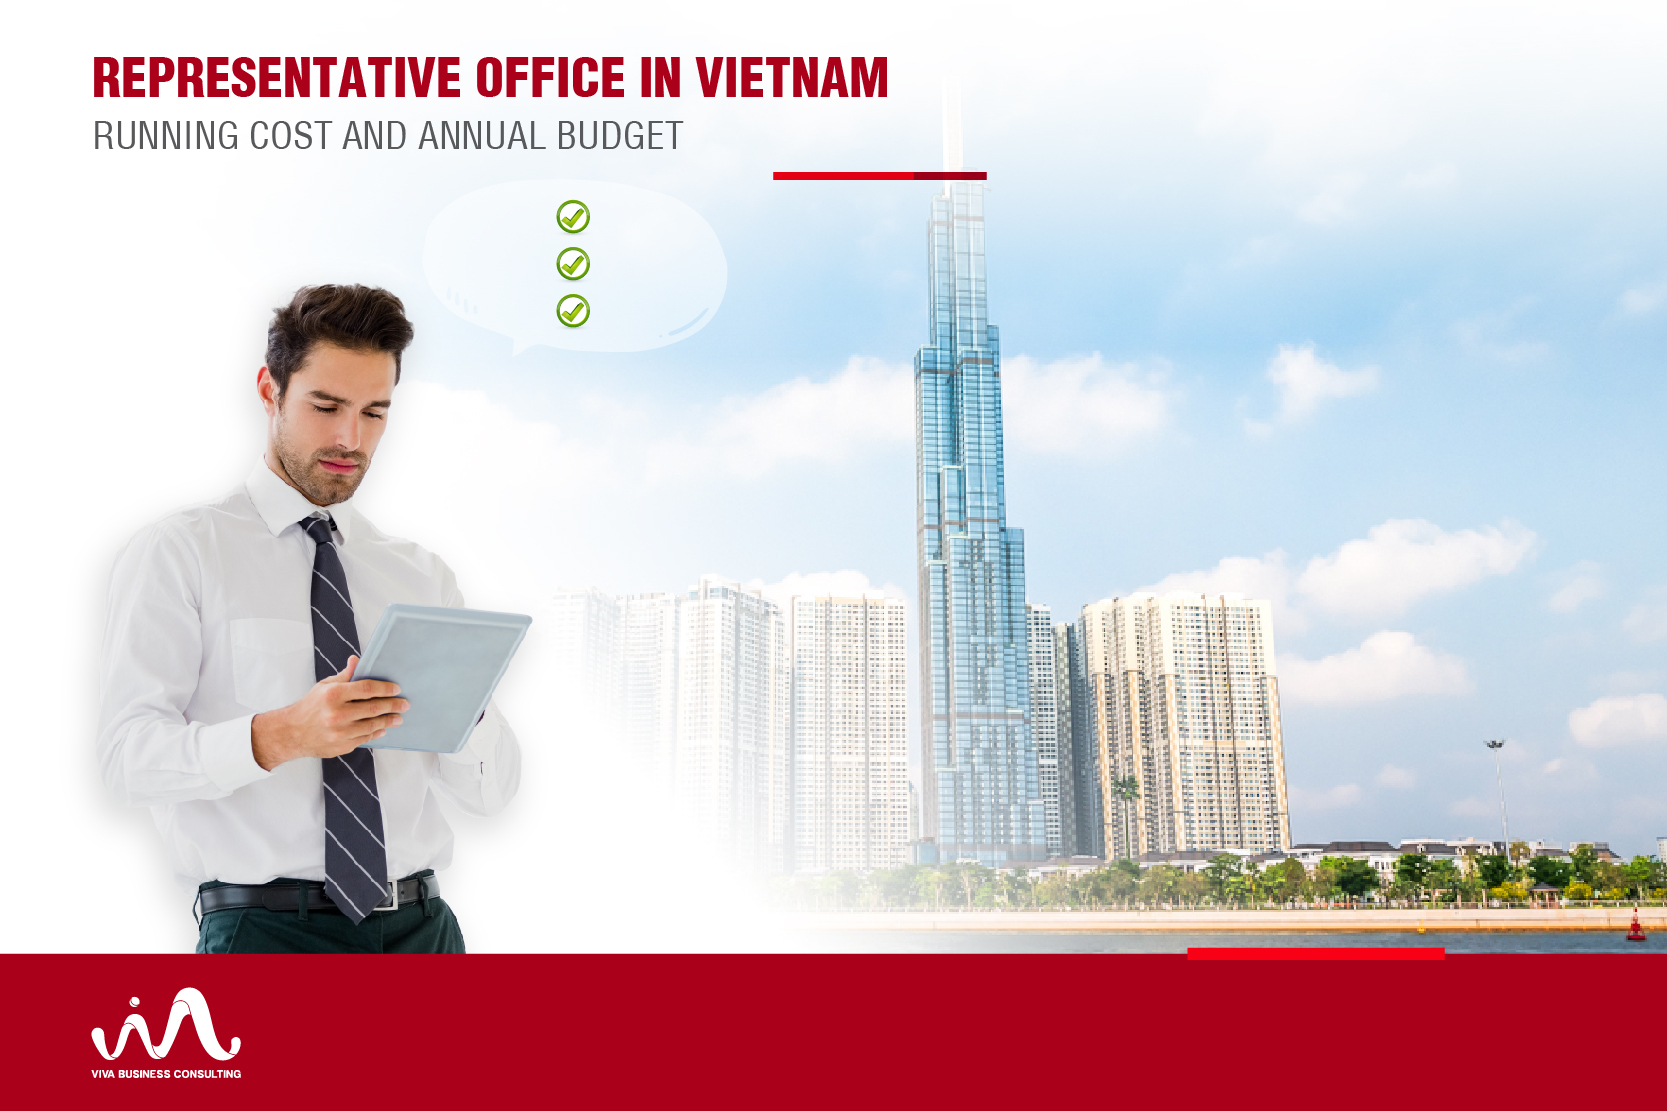 Running Cost of Representative Office in Vietnam